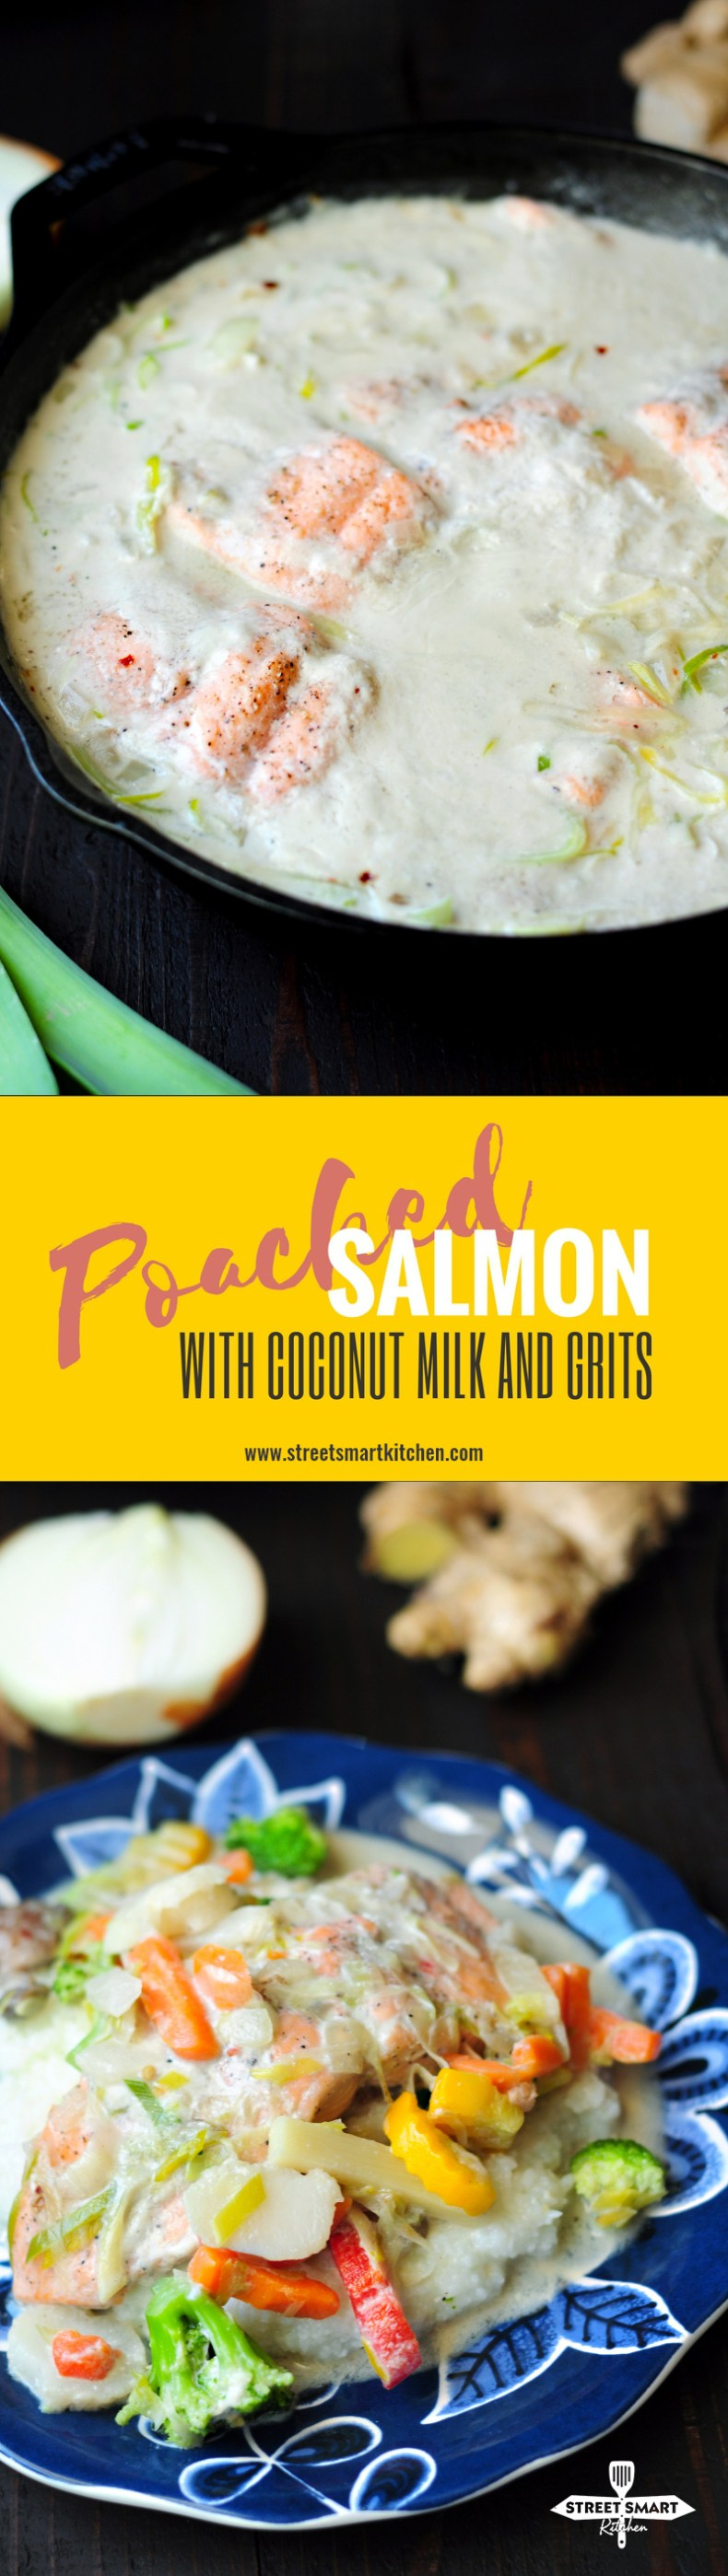 Poached Salmon Recipe with Coconut Milk and Grits